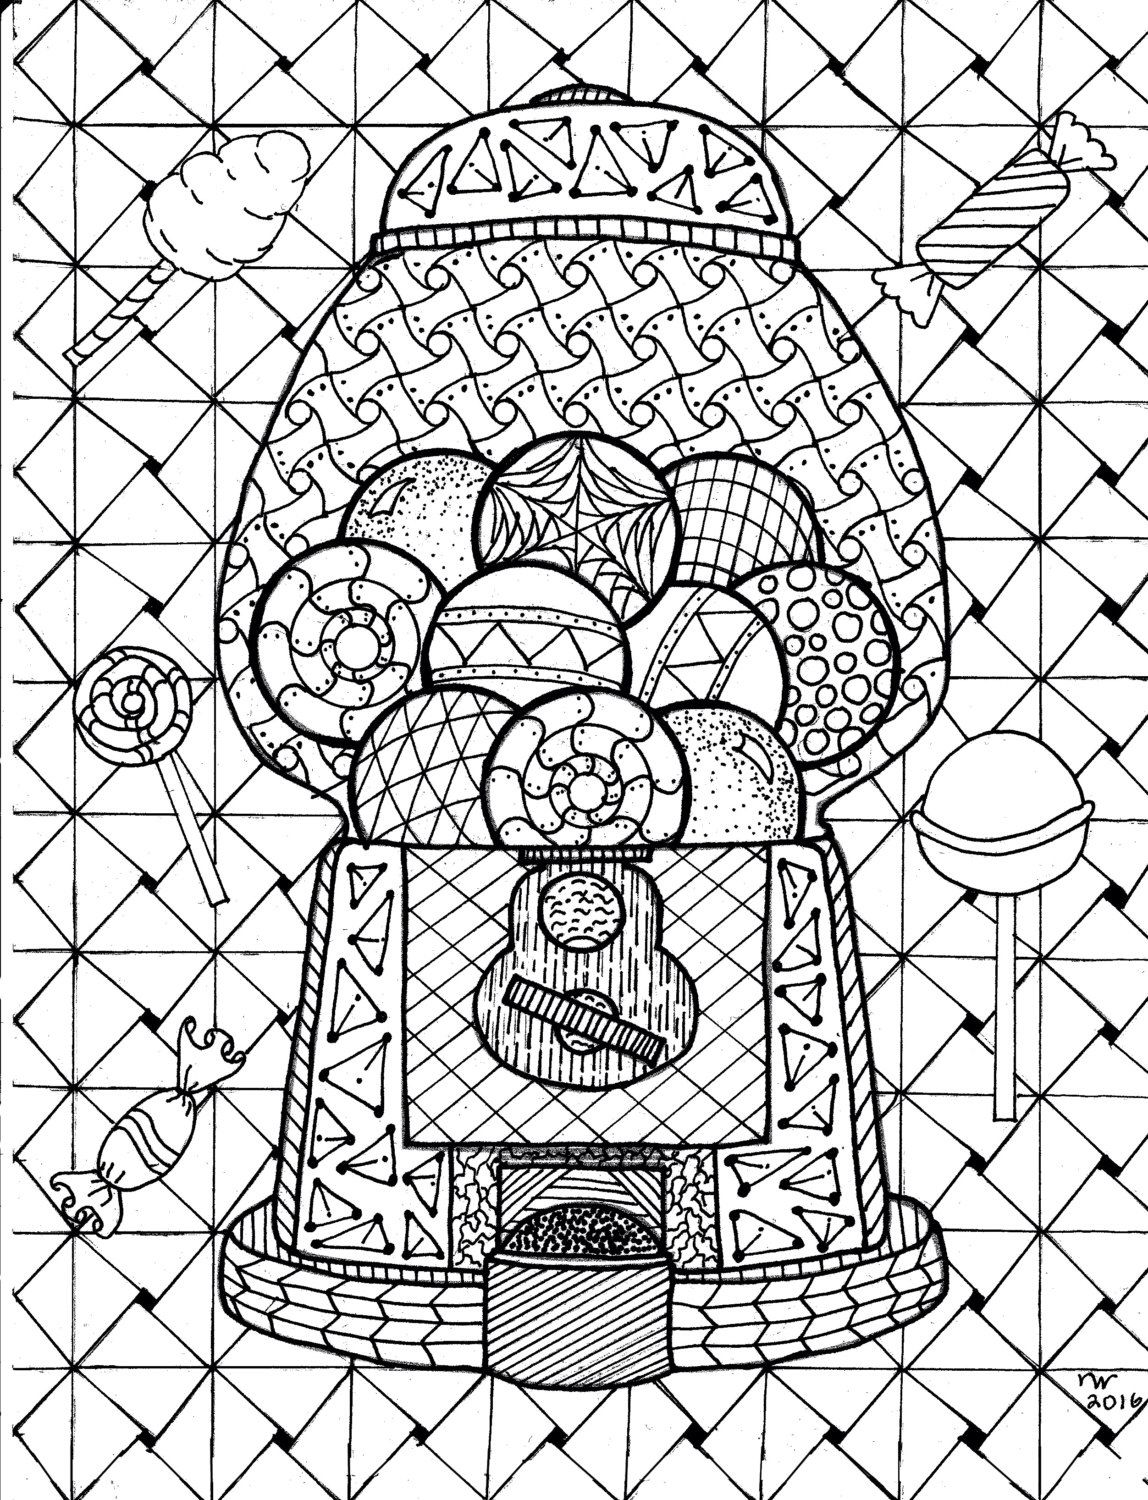 1148x1500 Gumball Machine Zentangle Coloring Page